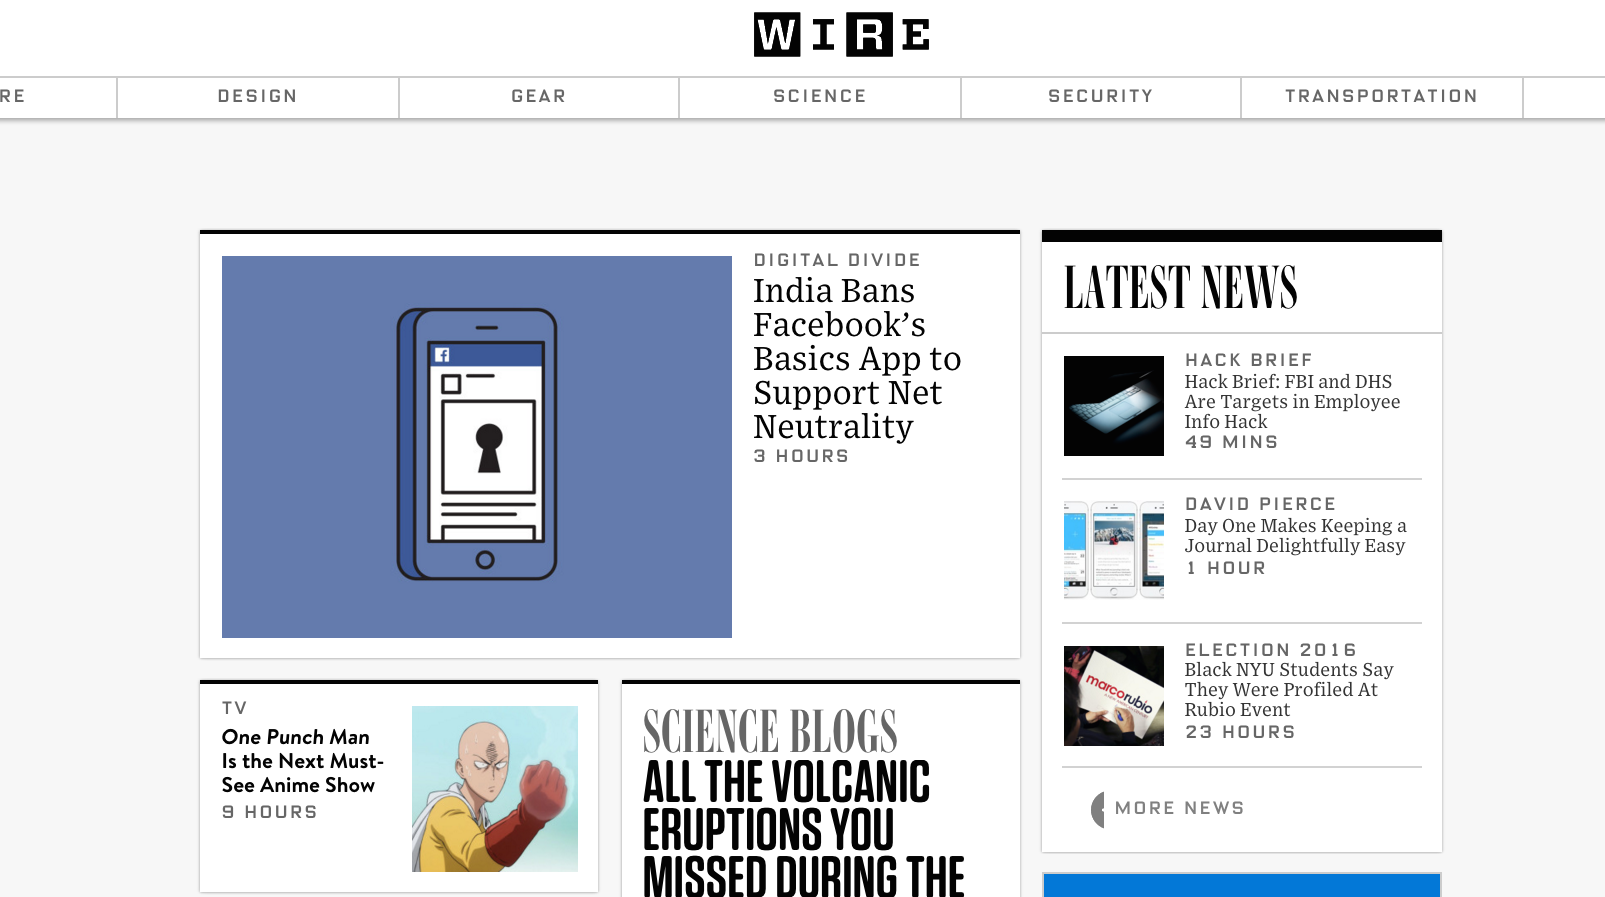 Want Wired.com Without Ads? That'll Be $3.99/Month